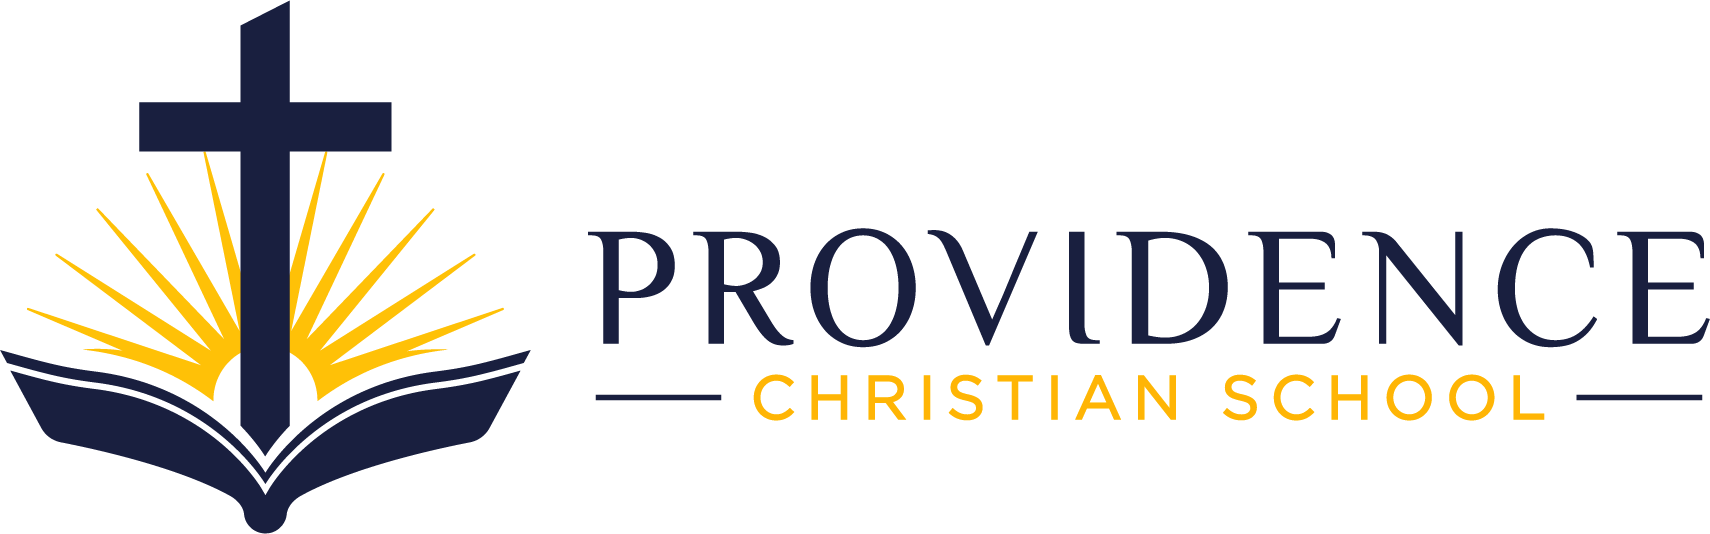 Providence Christian School | Equipping Hearts and Minds to Serve